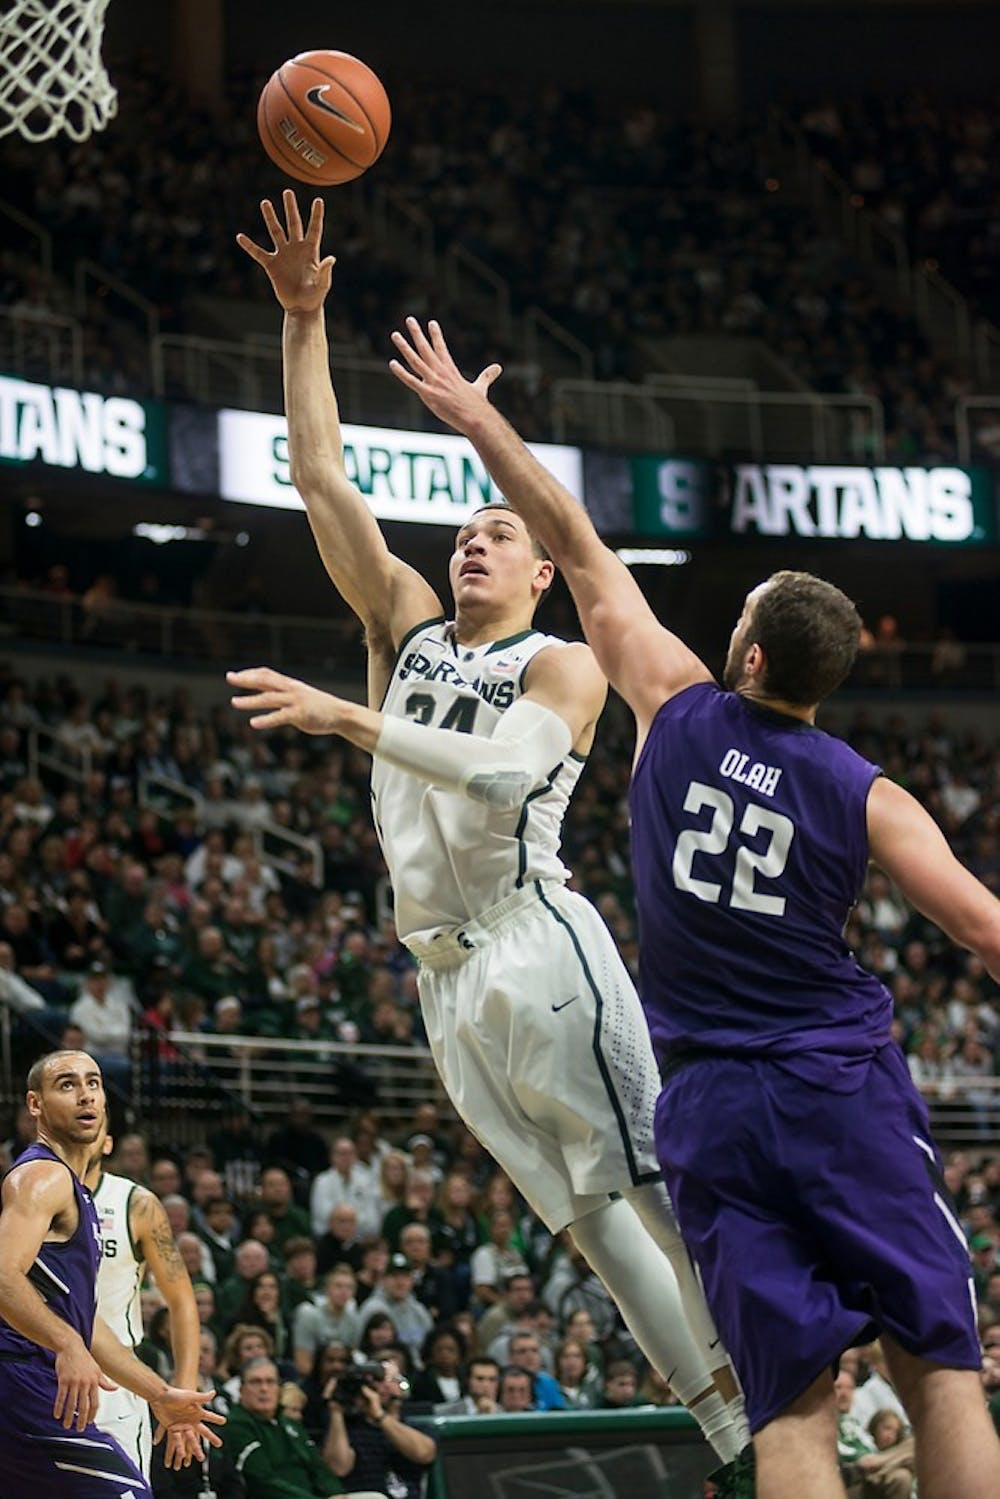 <p>Sophomore forward Gavin Schilling attempts a point over Northwestern center Alex Olah Jan. 11, 2015, during the game against Northwestern at Breslin Center.  The Spartans defeated the Wildcats, 84-77 in overtime. Erin Hampton/The State News</p>